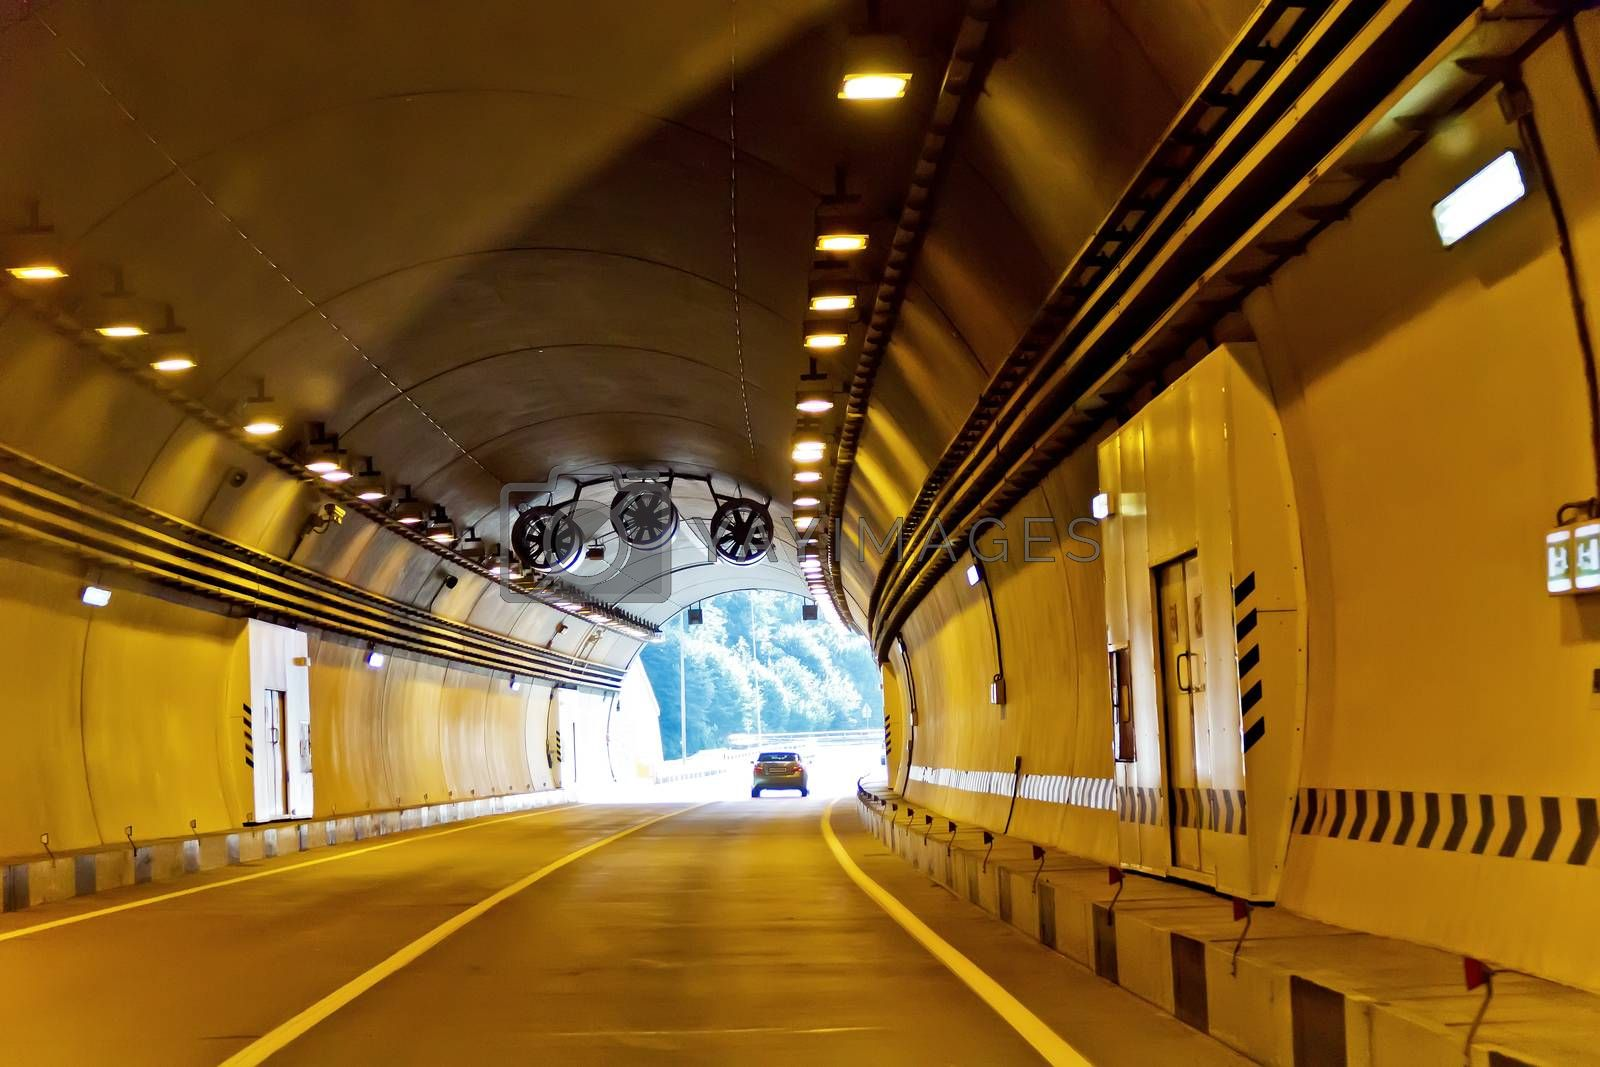 Driving in a tunnel with sunlight in the end